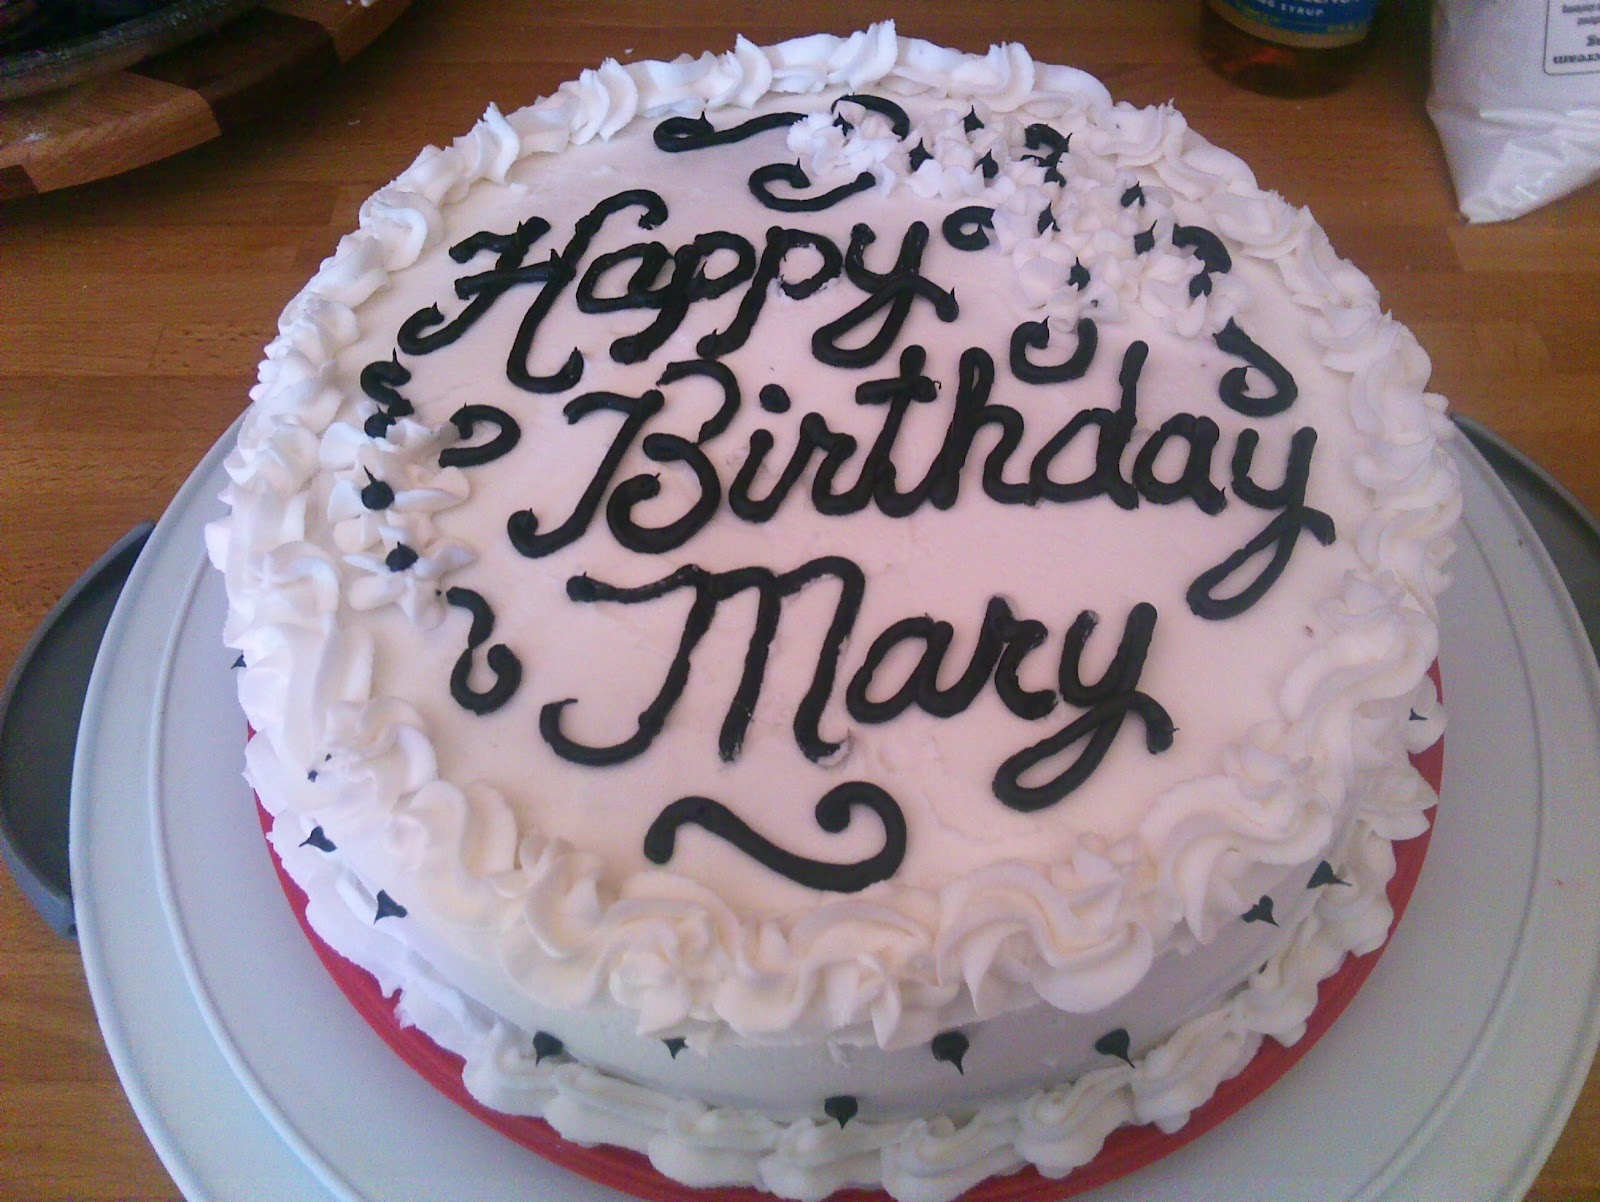 Have You Wished Mary Yonkers A Happy Birthday